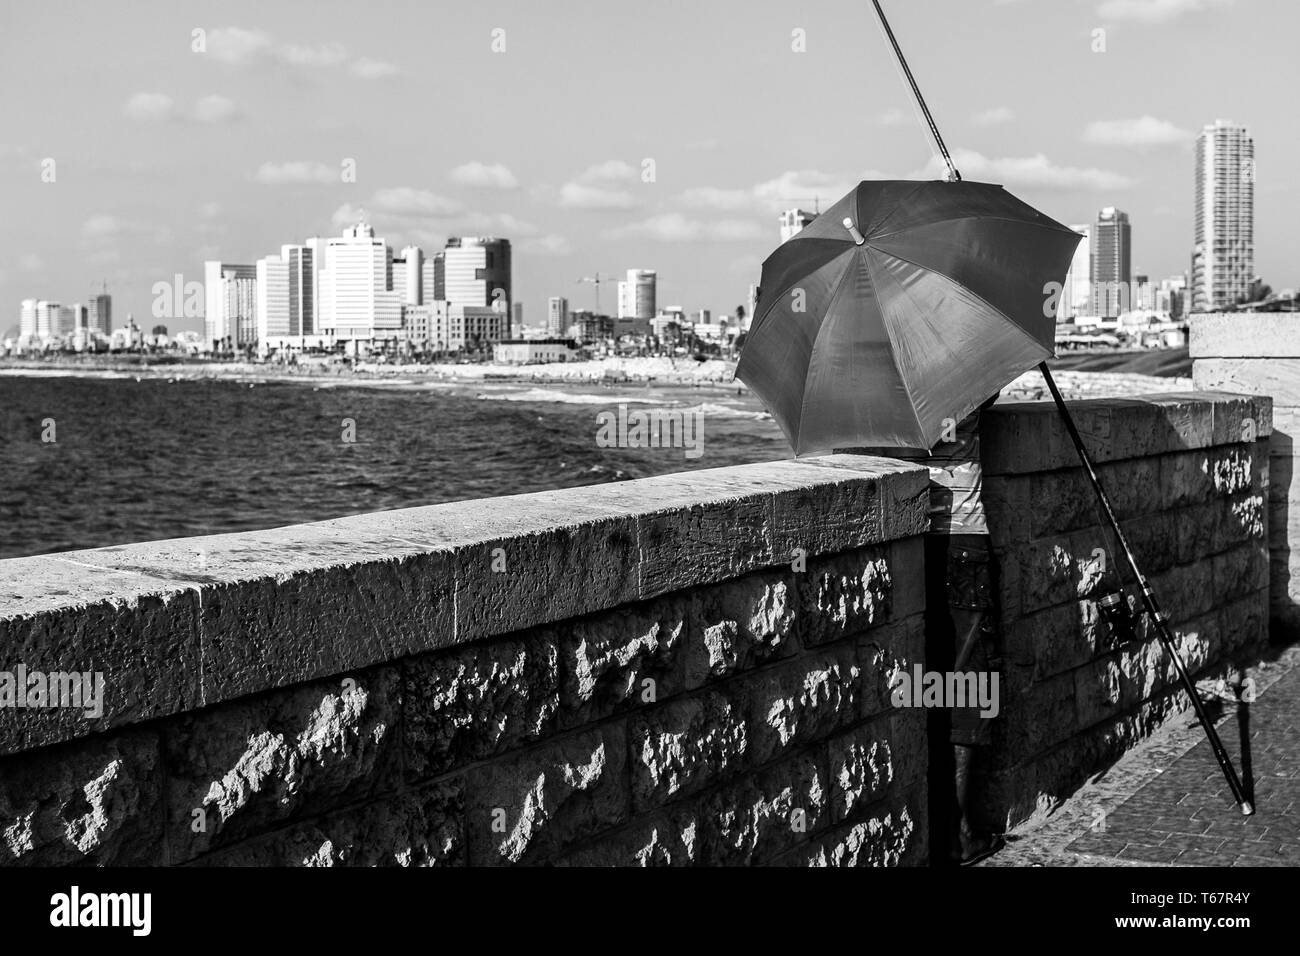 View of the Tel Aviv Promenade. Tel Aviv, Israel - Stock Image